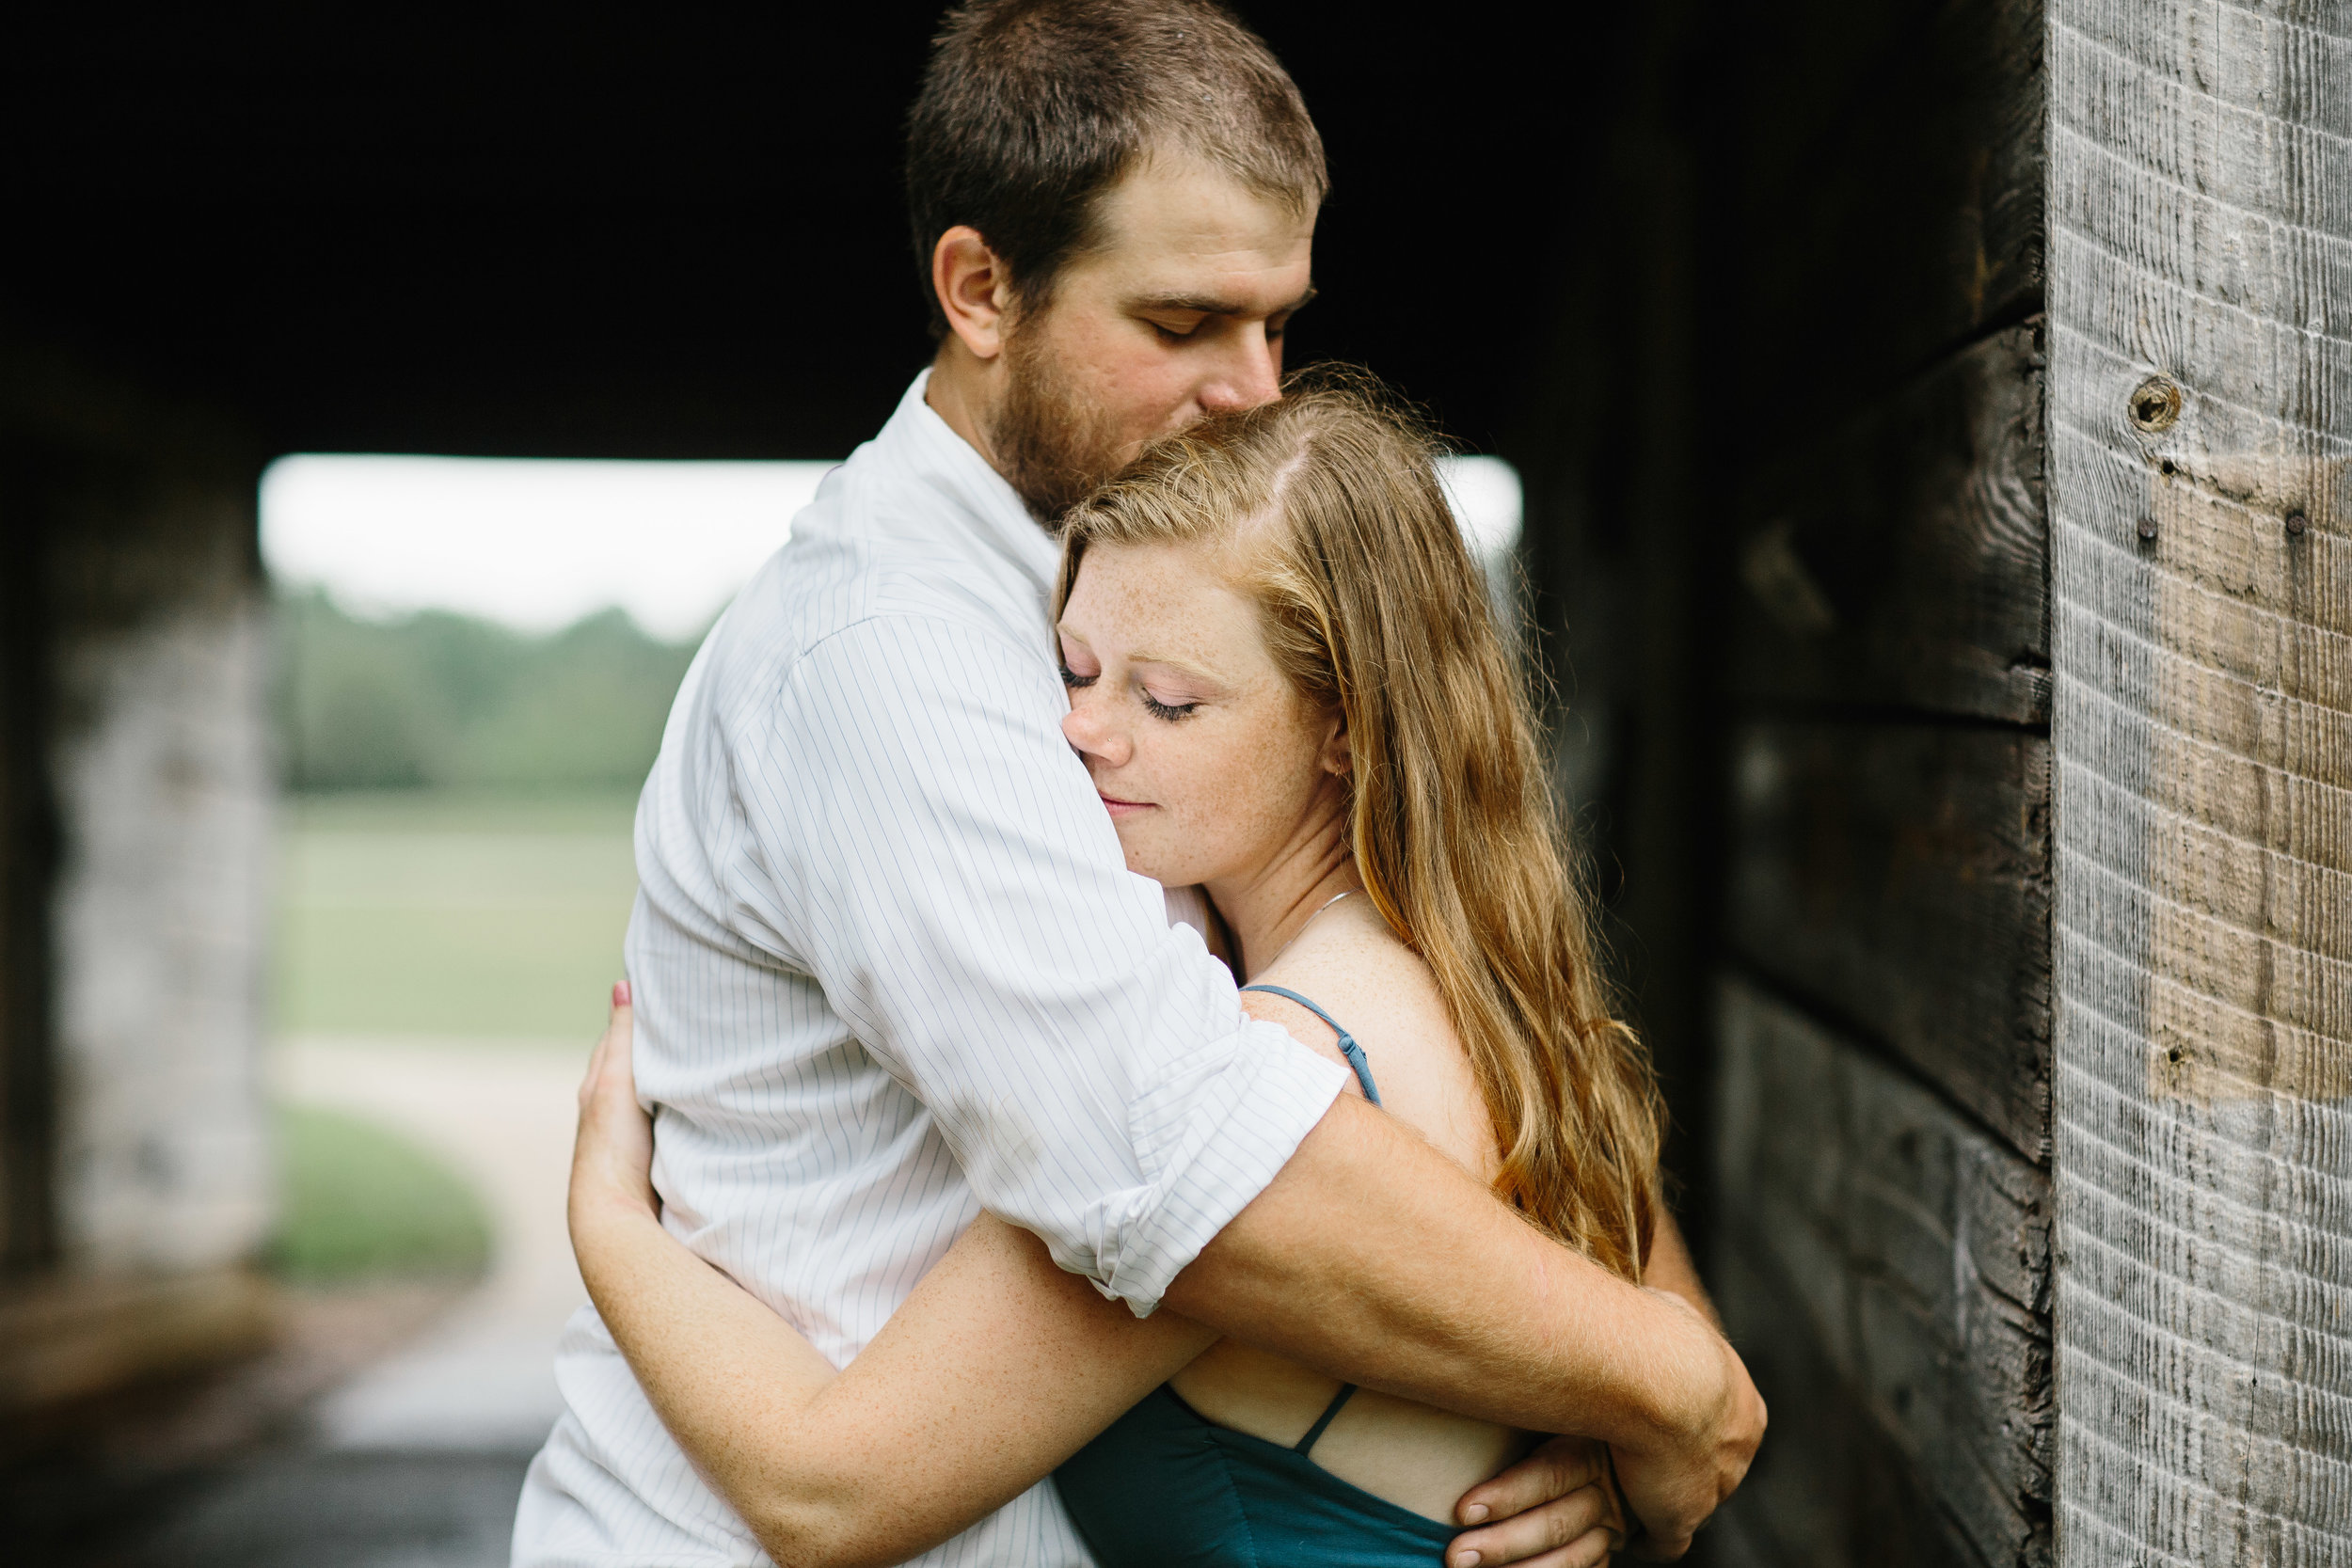 couple hugging.couple in love.e carroll joyner park.wake forest photographer.raleigh photographer.JPG